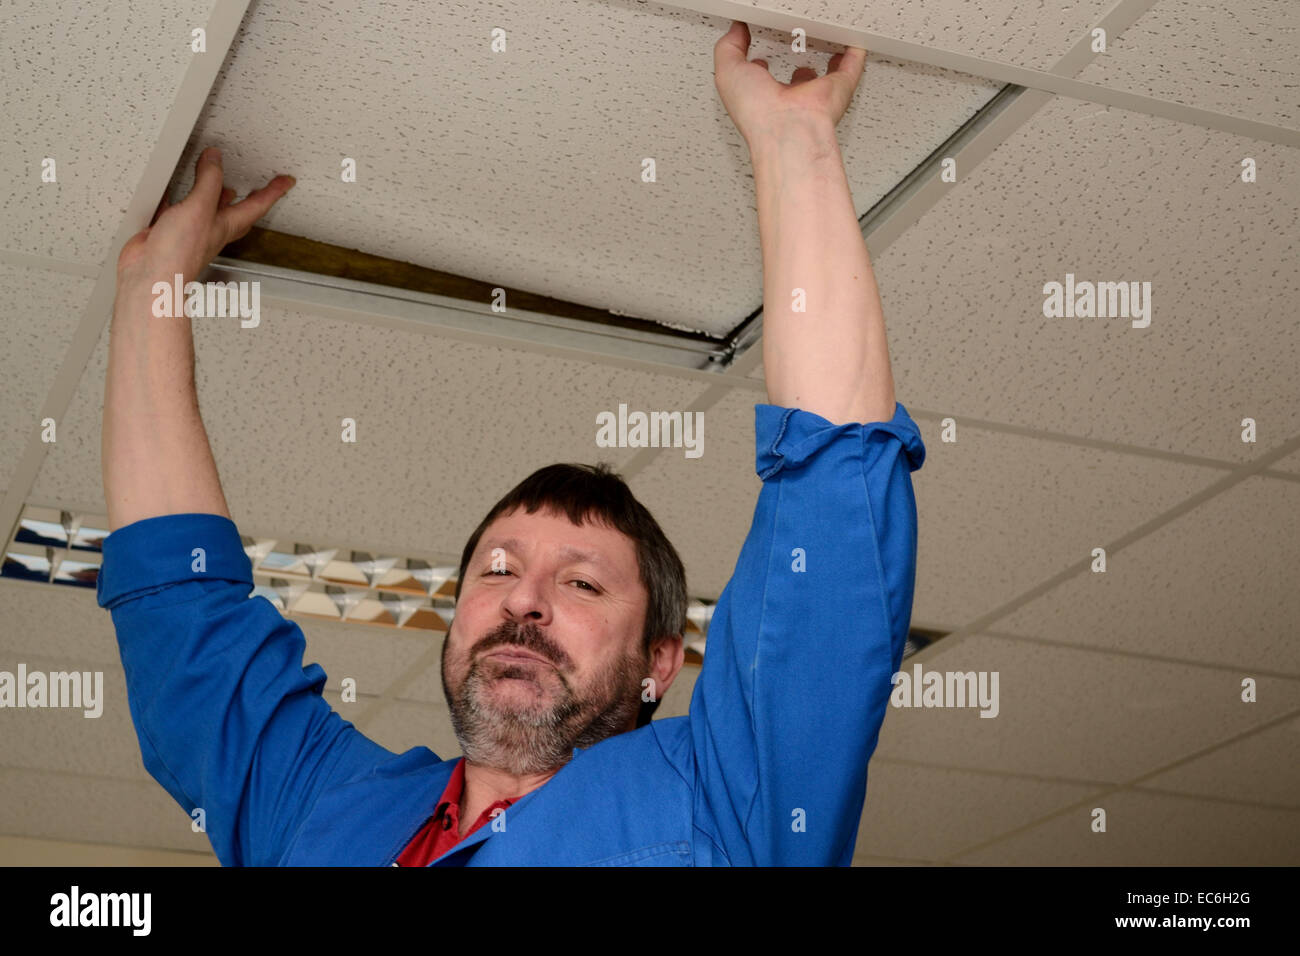 Skilled workers repaired damage - Stock Image